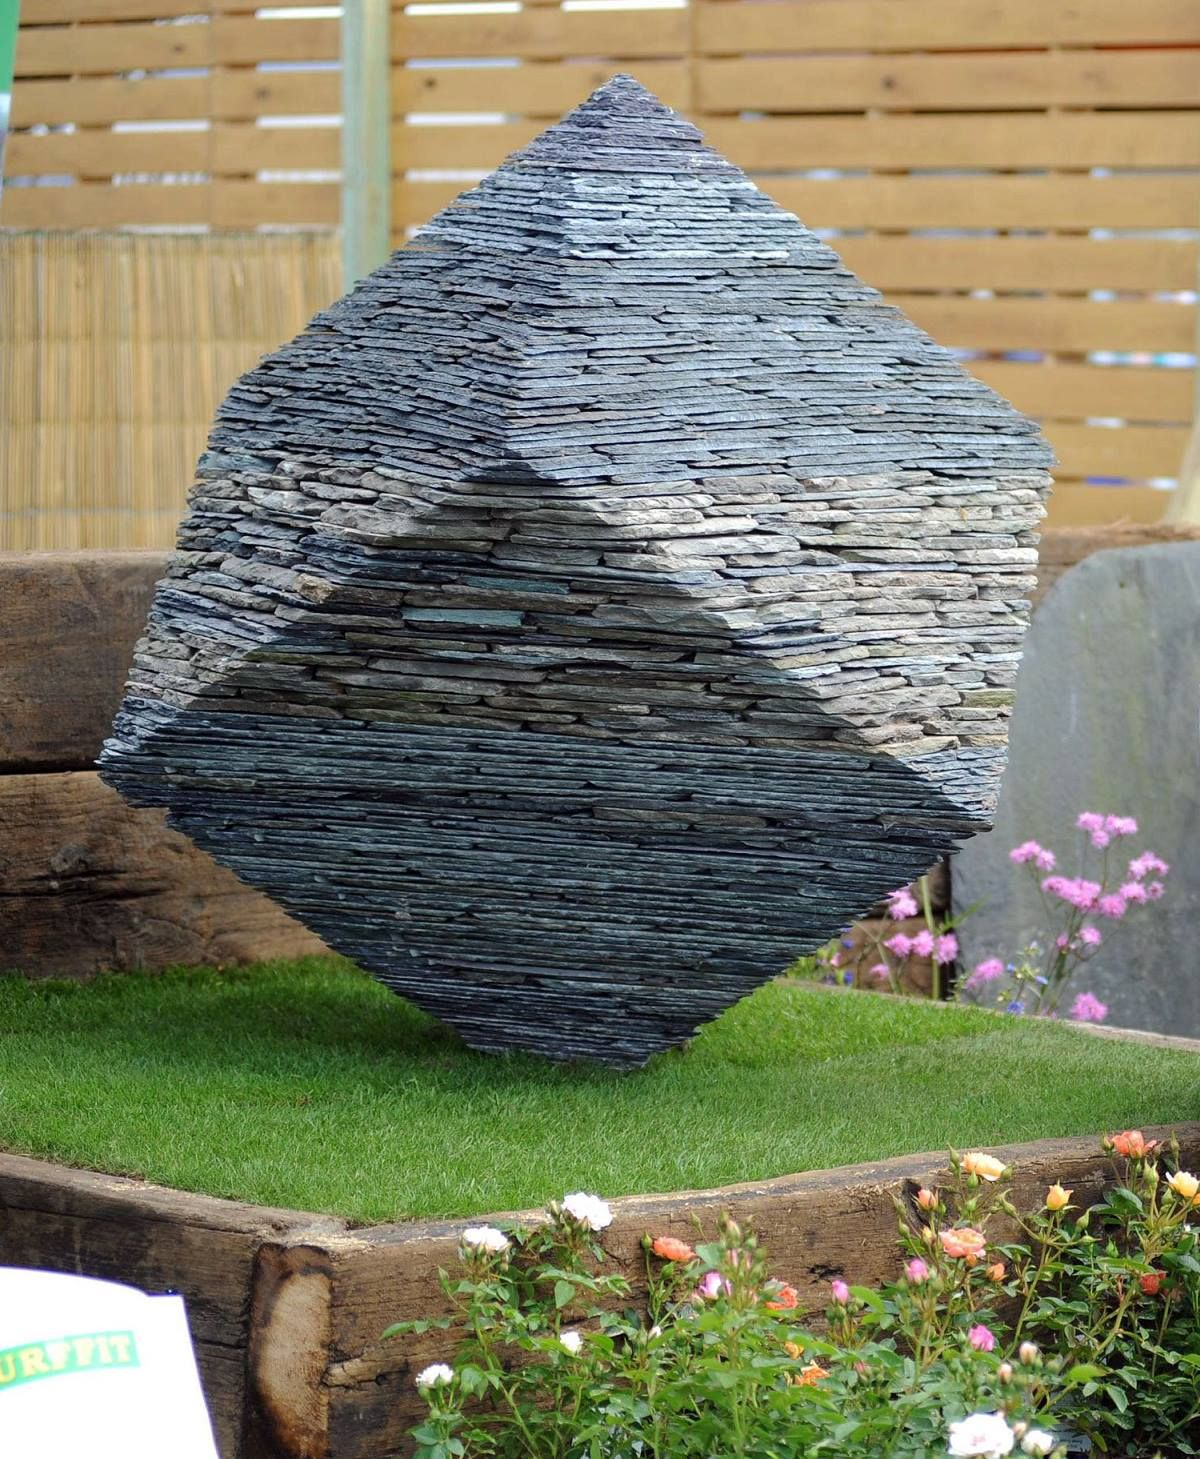 Cube Slate Sculpture By James Parker At Gardening Scotland June